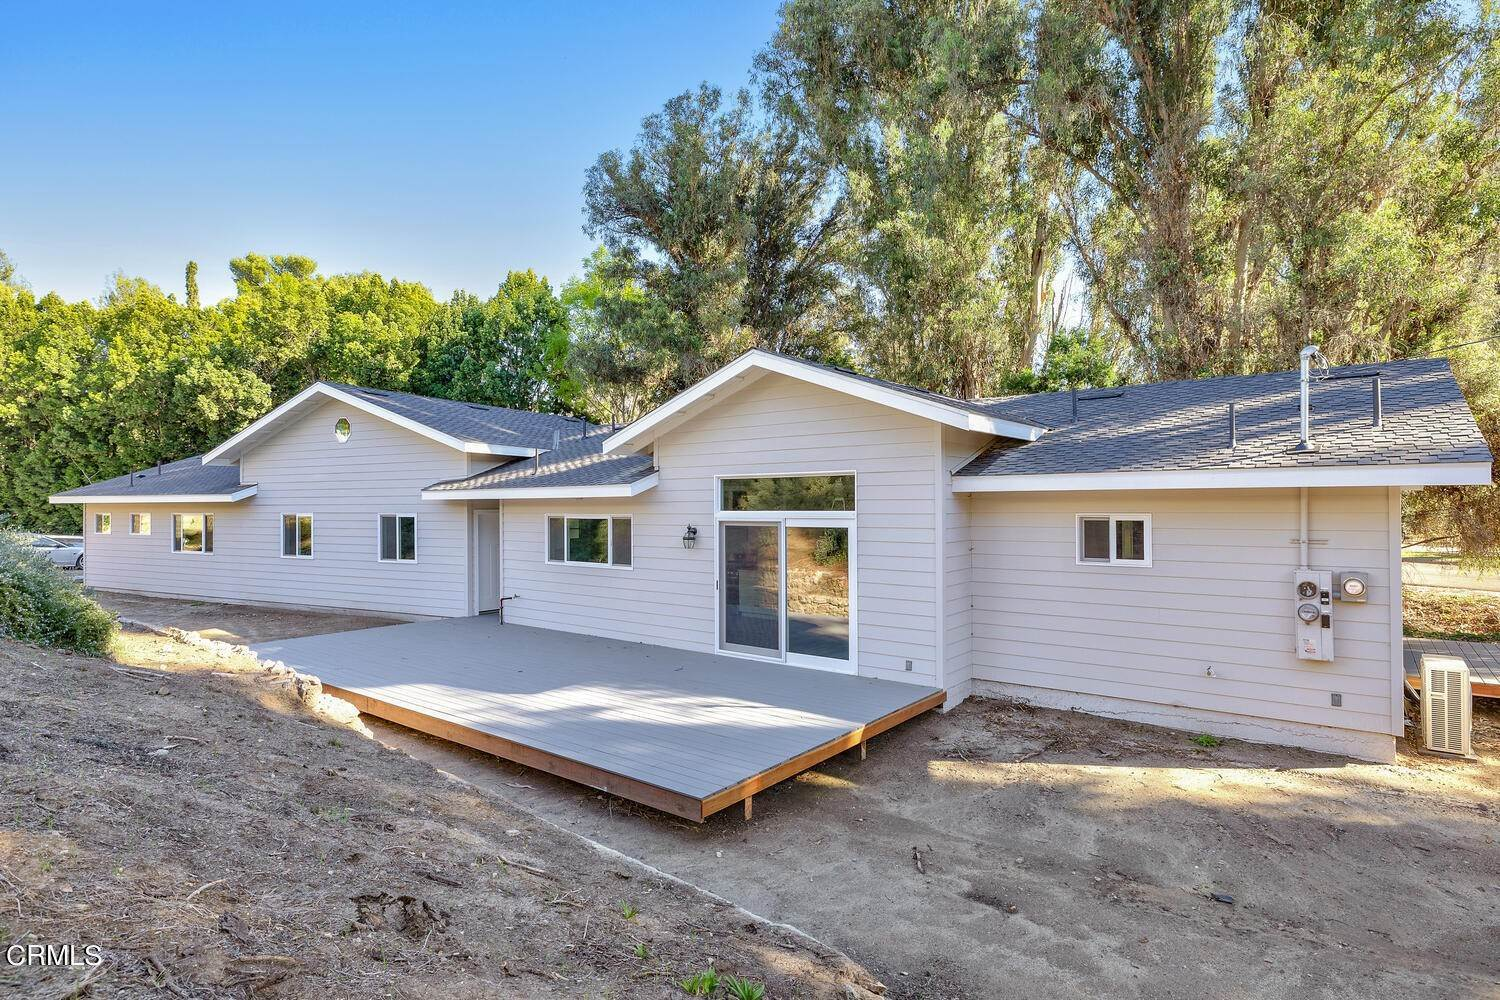 30. Single Family Homes for Sale at 39 - 41 Ramona Place Camarillo, California 93010 United States